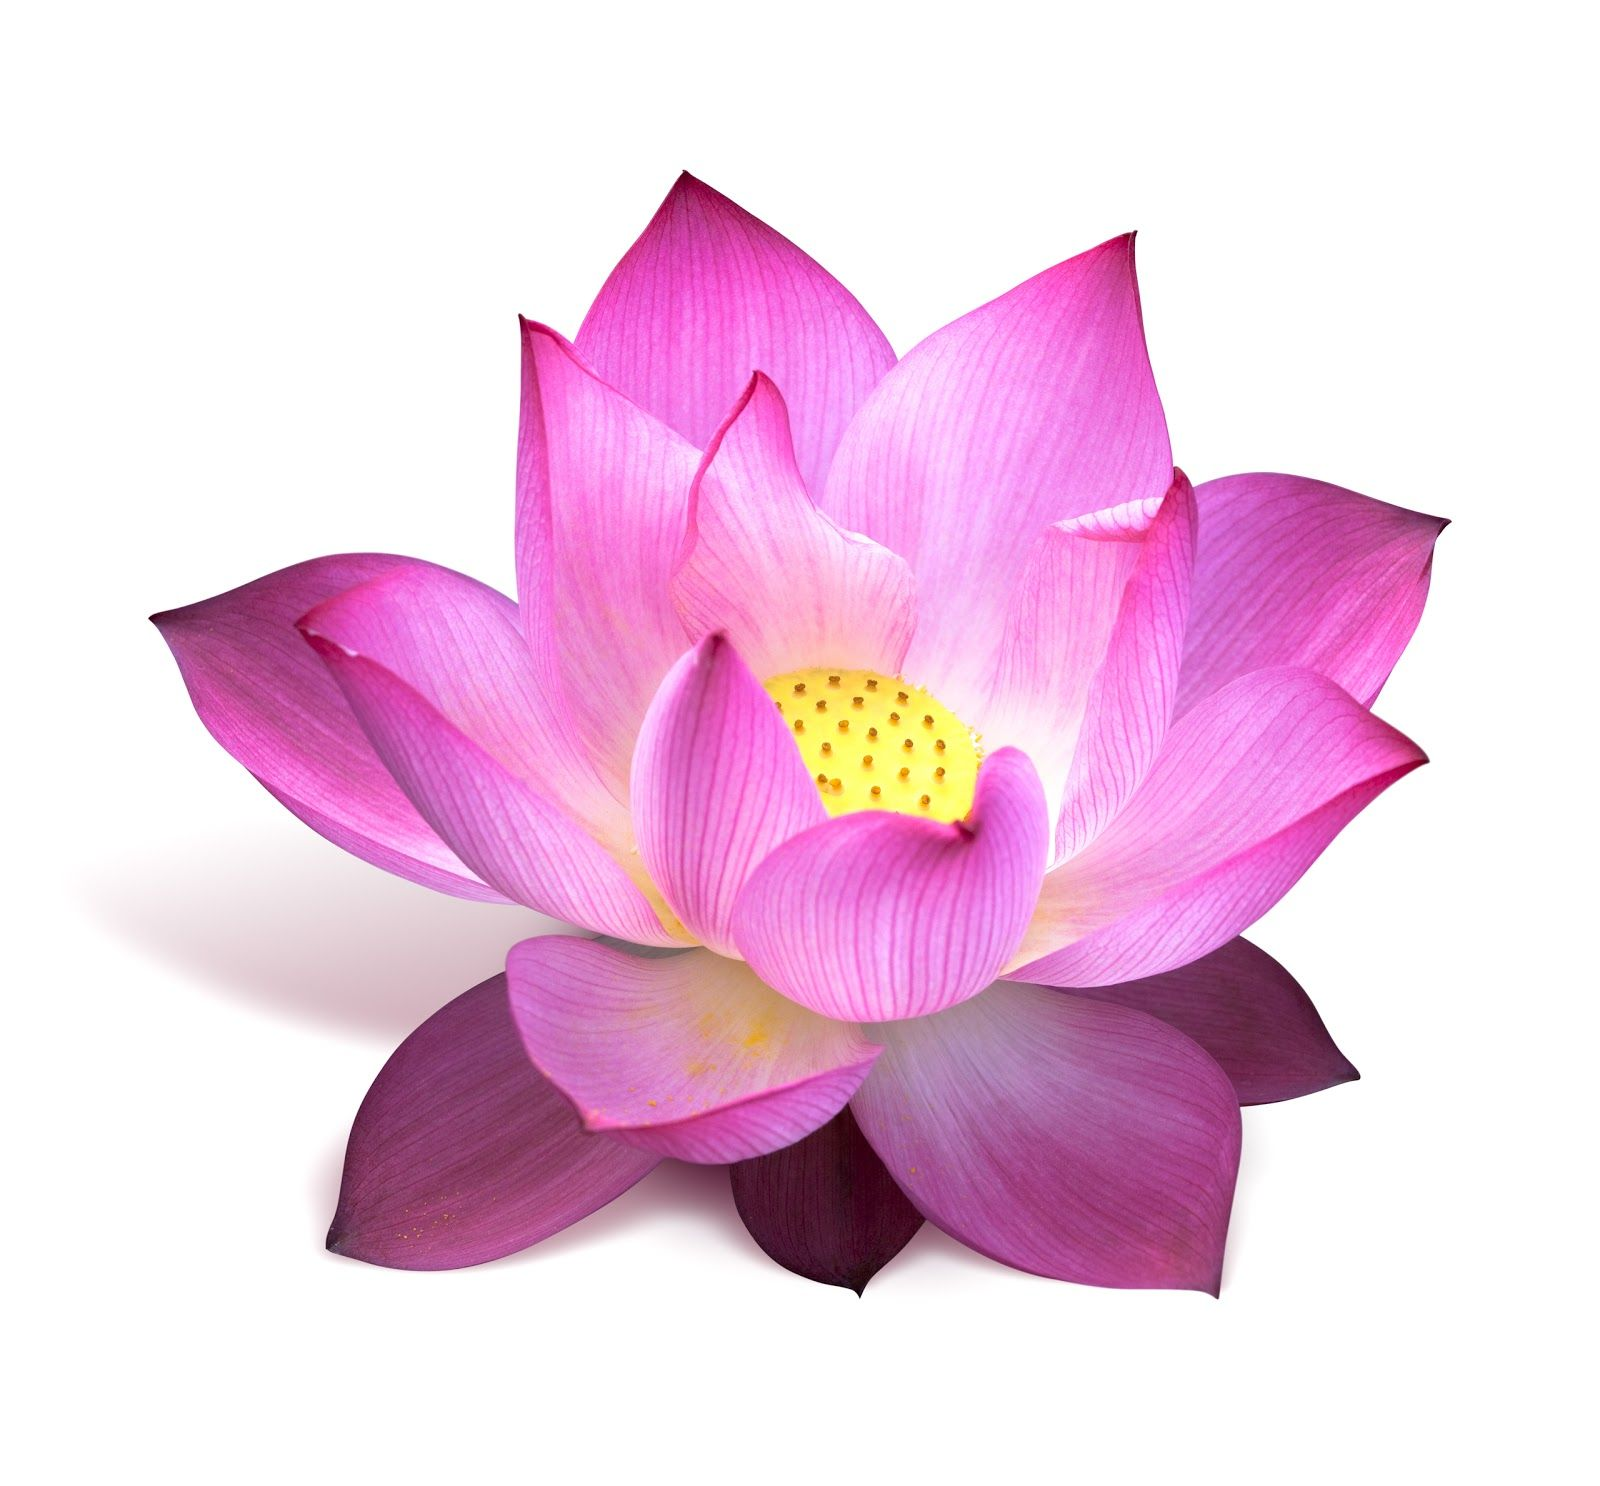 Lotus flower images saferbrowser yahoo image search results lotus flower images saferbrowser yahoo image search results izmirmasajfo